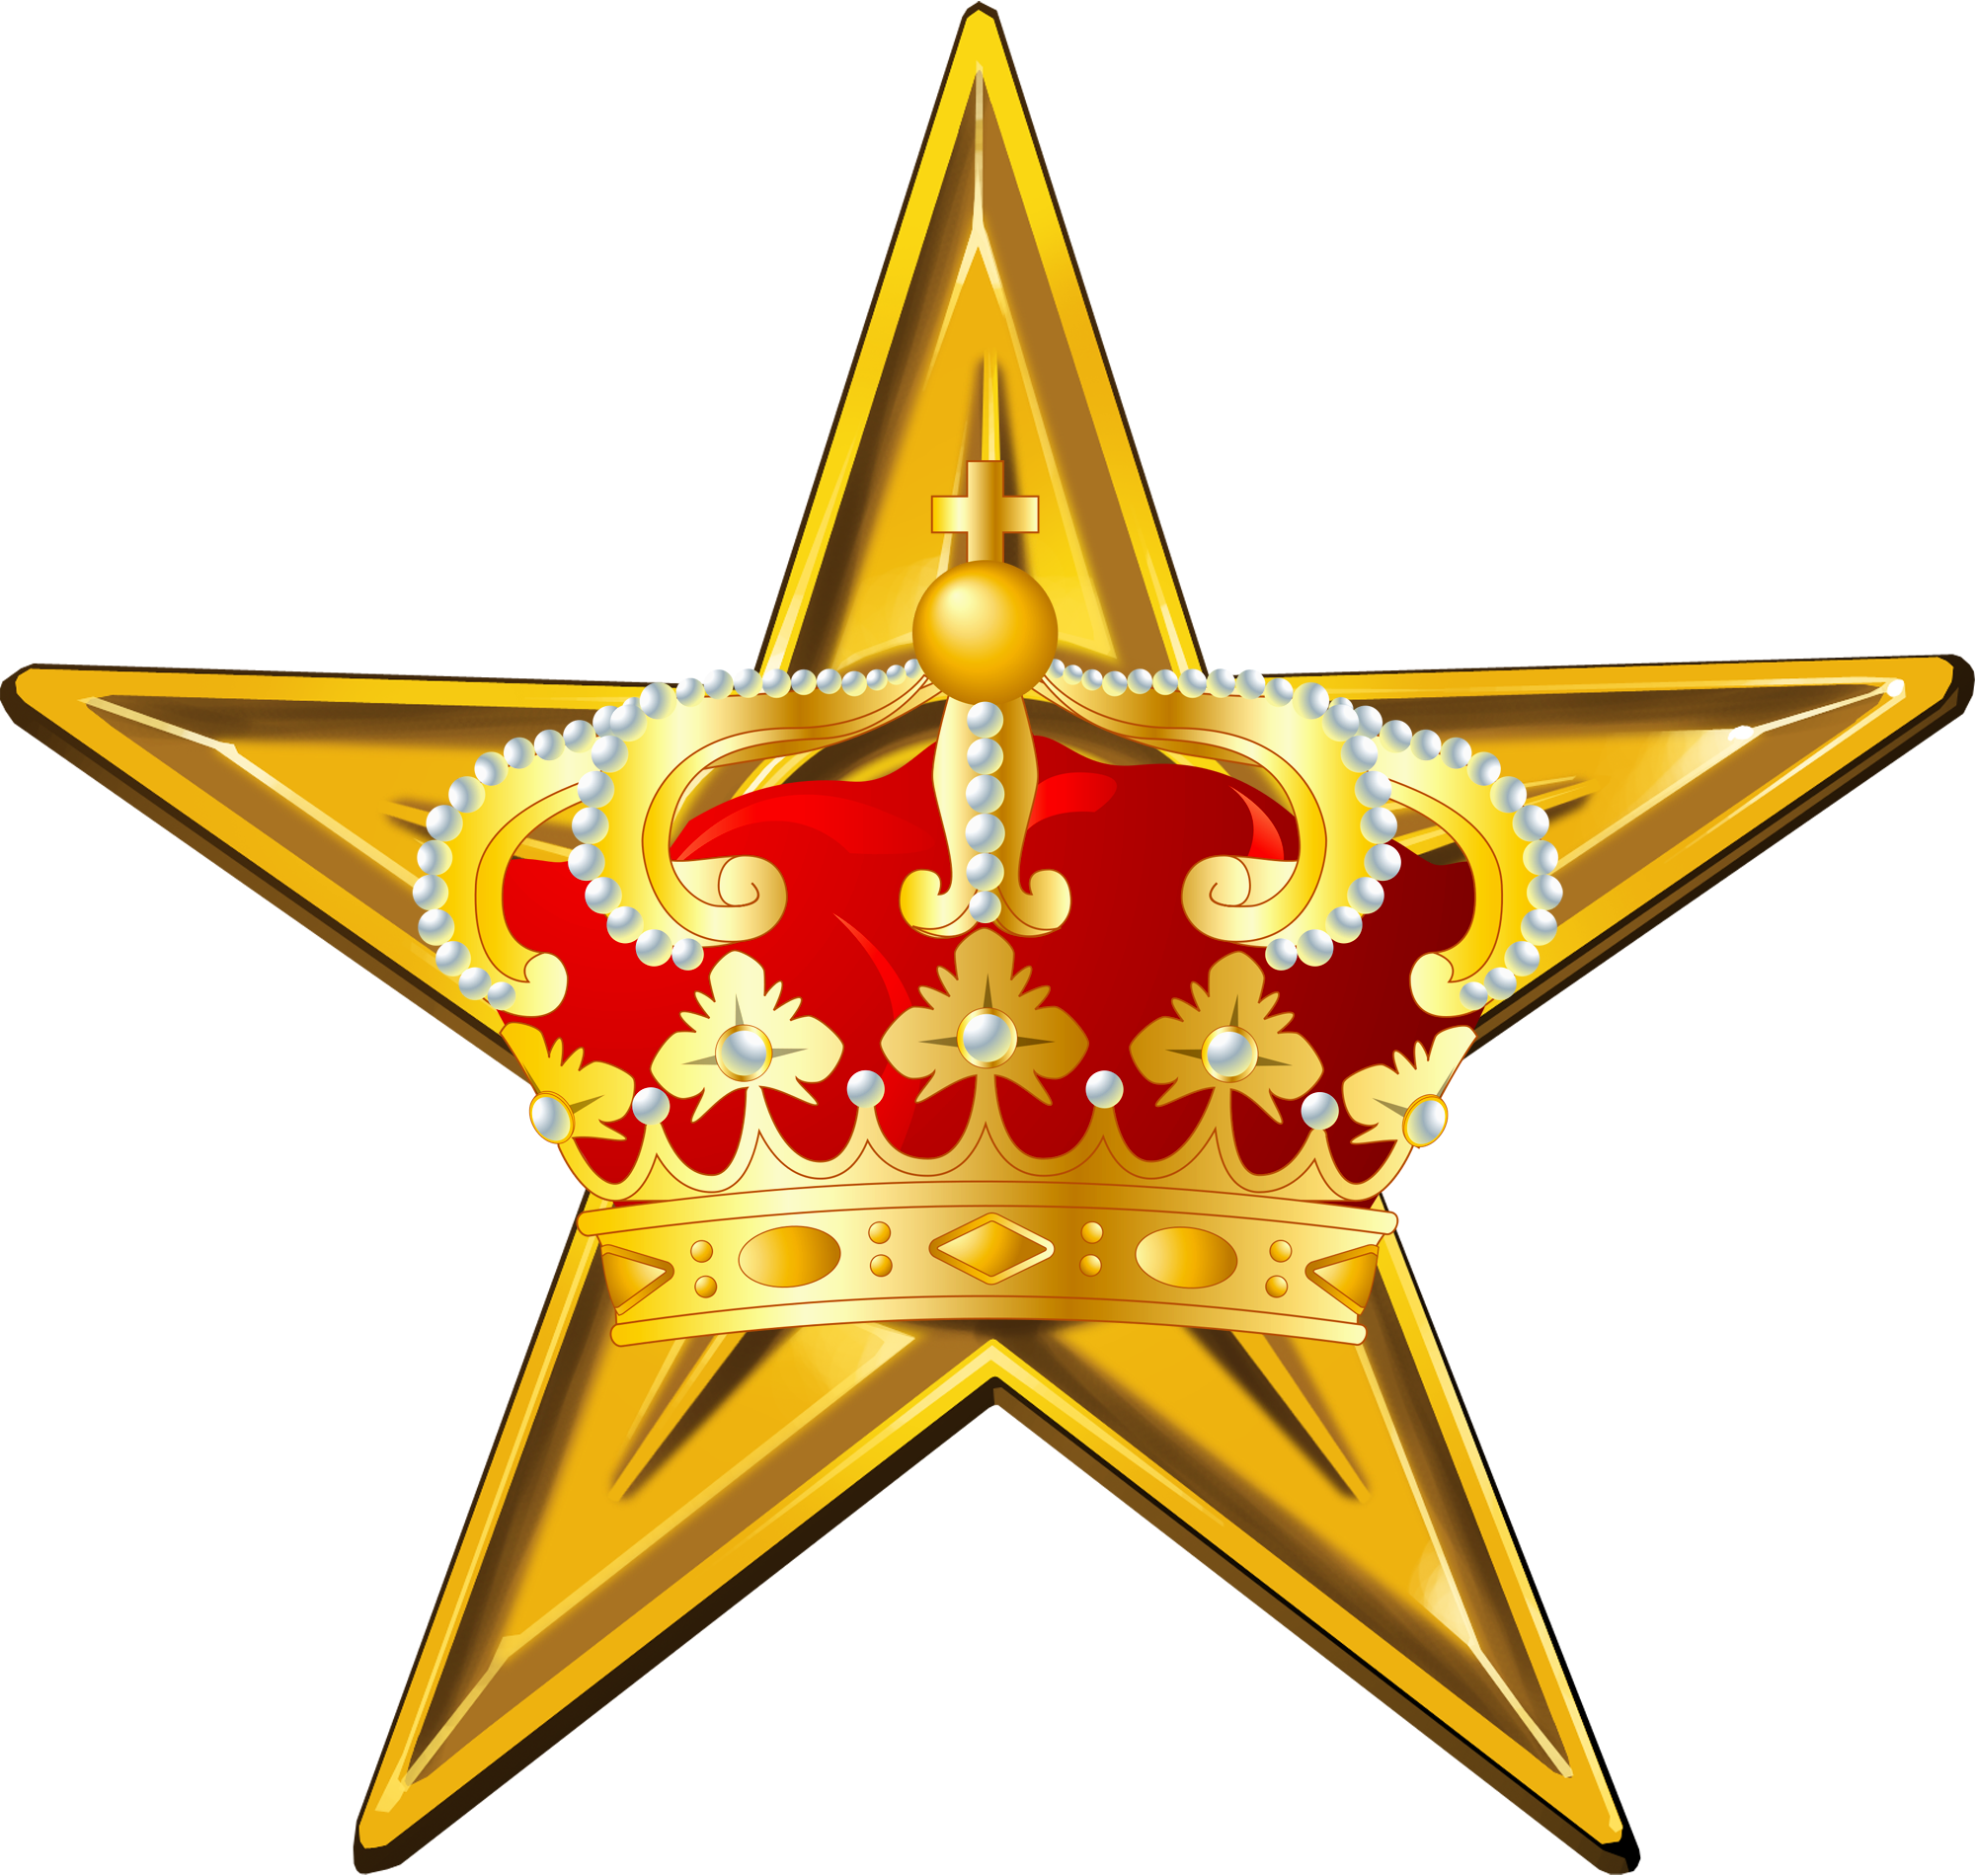 Free Royalty Png, Download Free Clip Art, Free Clip Art on.